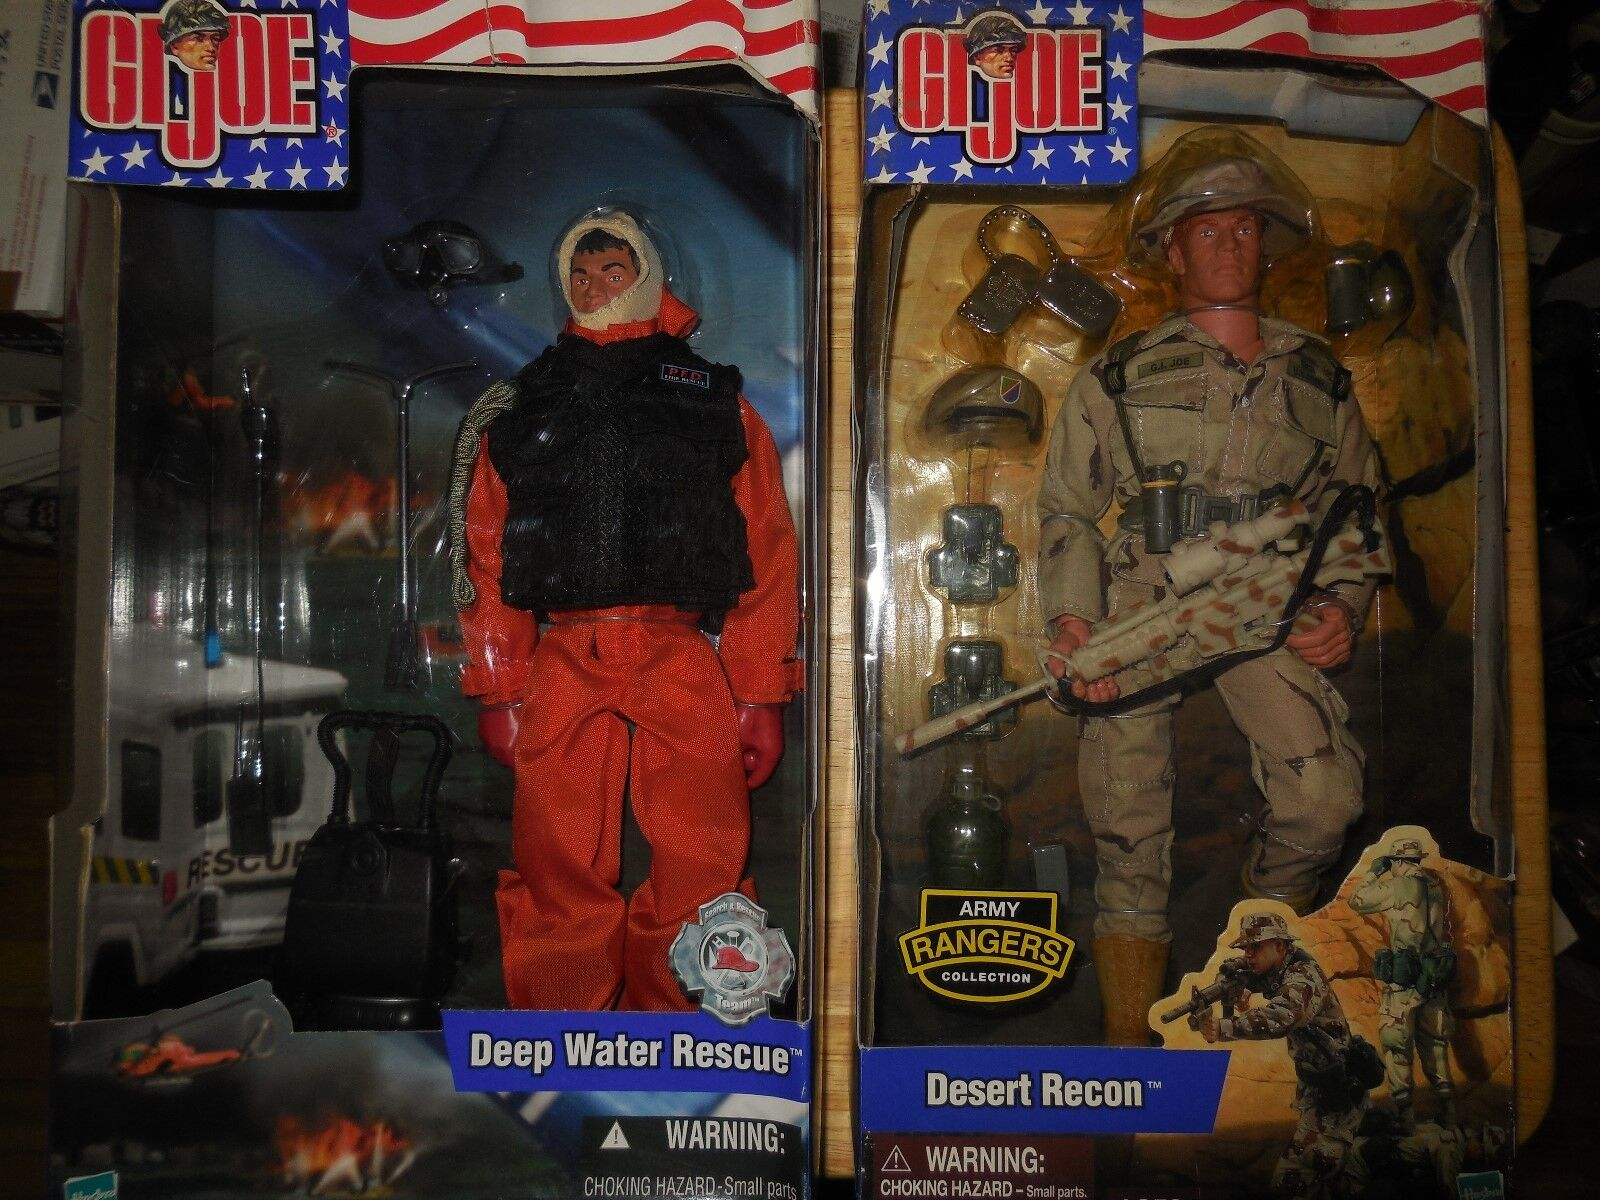 2002 g,i, joe  desert recon and deep water rescue action figures